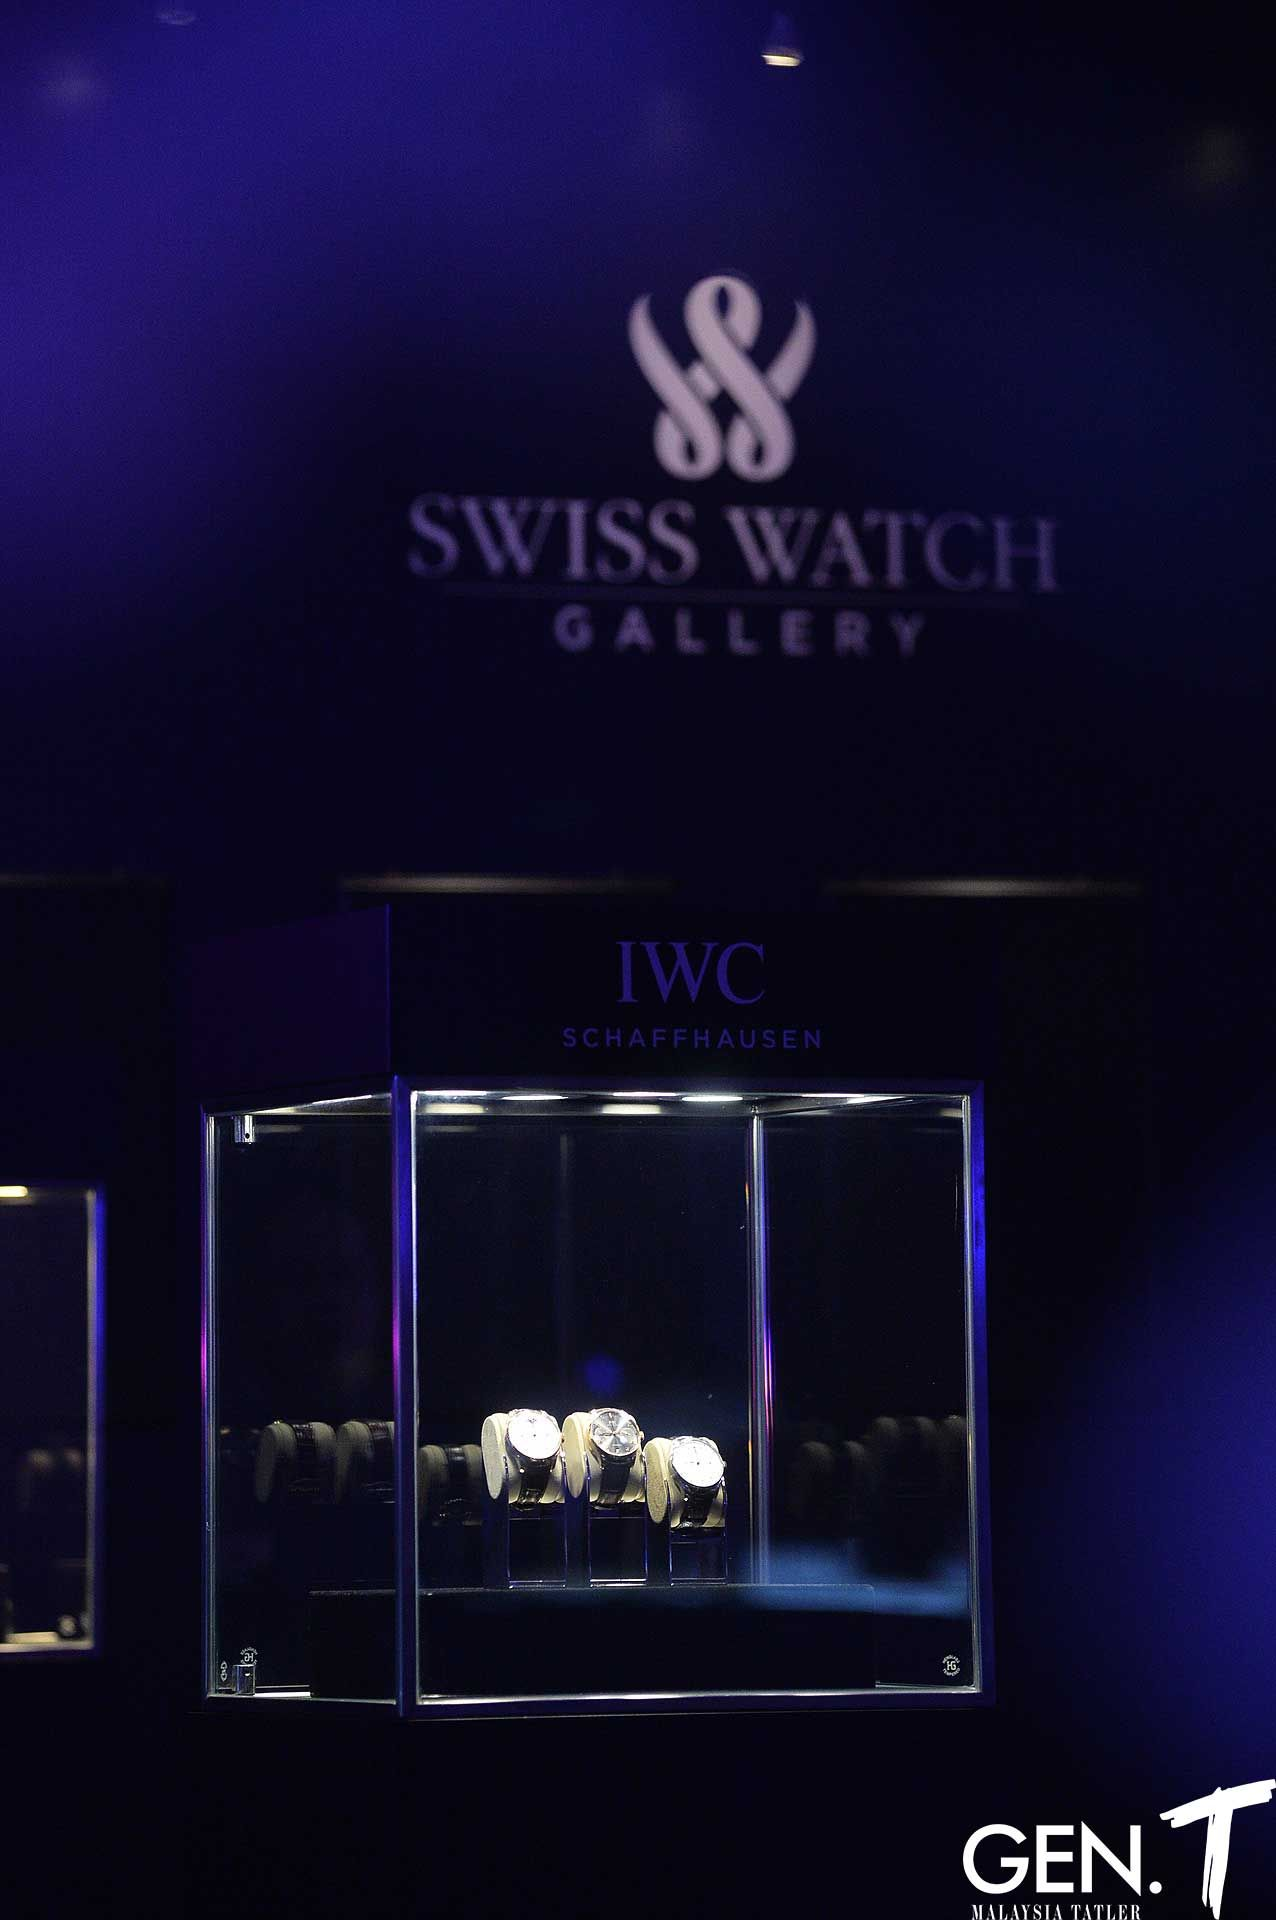 Swiss Watch Gallery had IWC watches on display